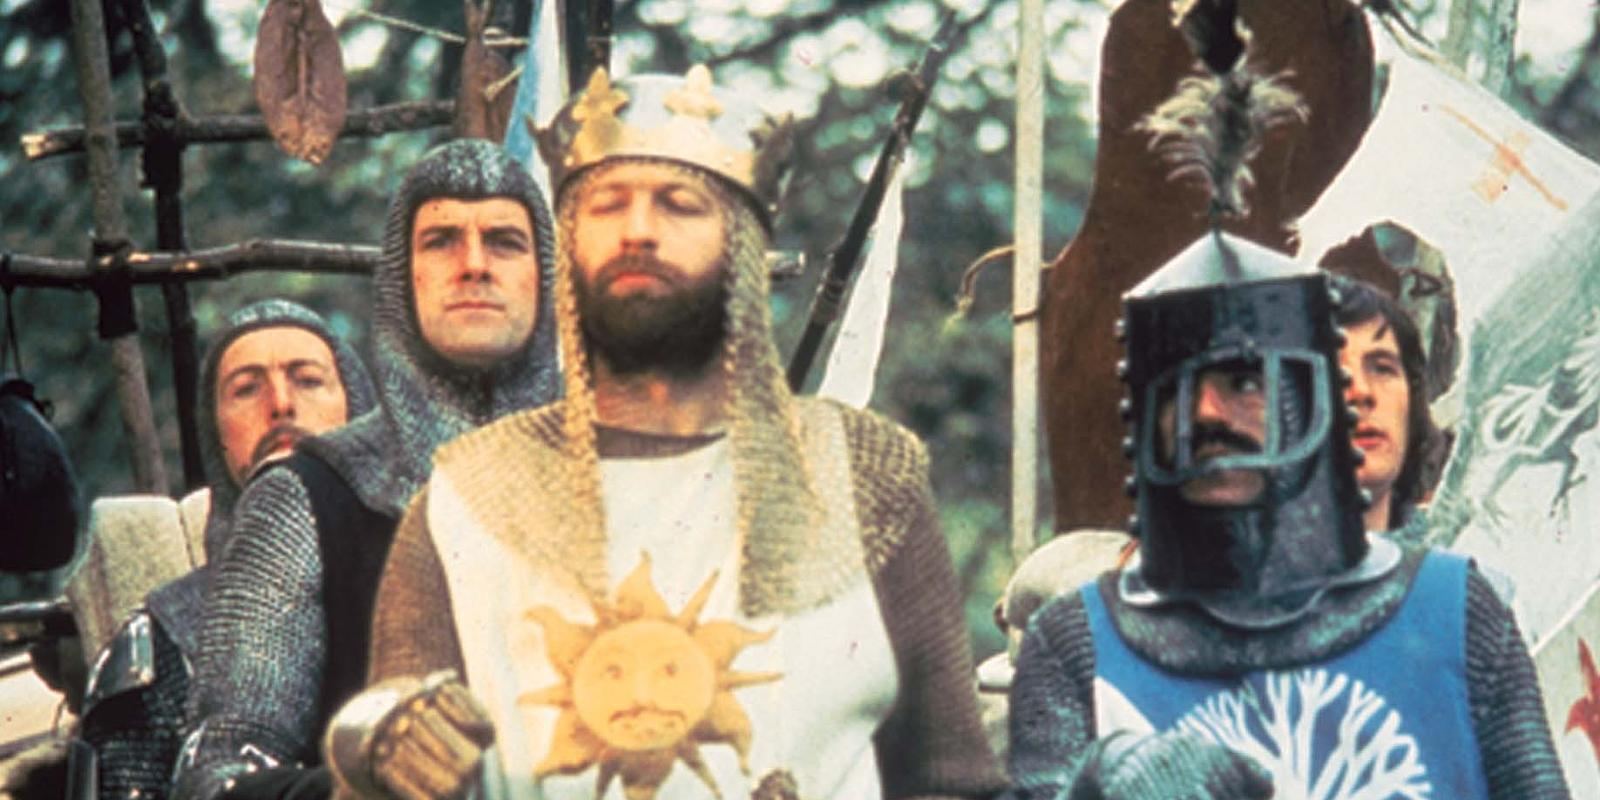 Knights of the round table monty python - Monty Python Knights Of The Round Table S